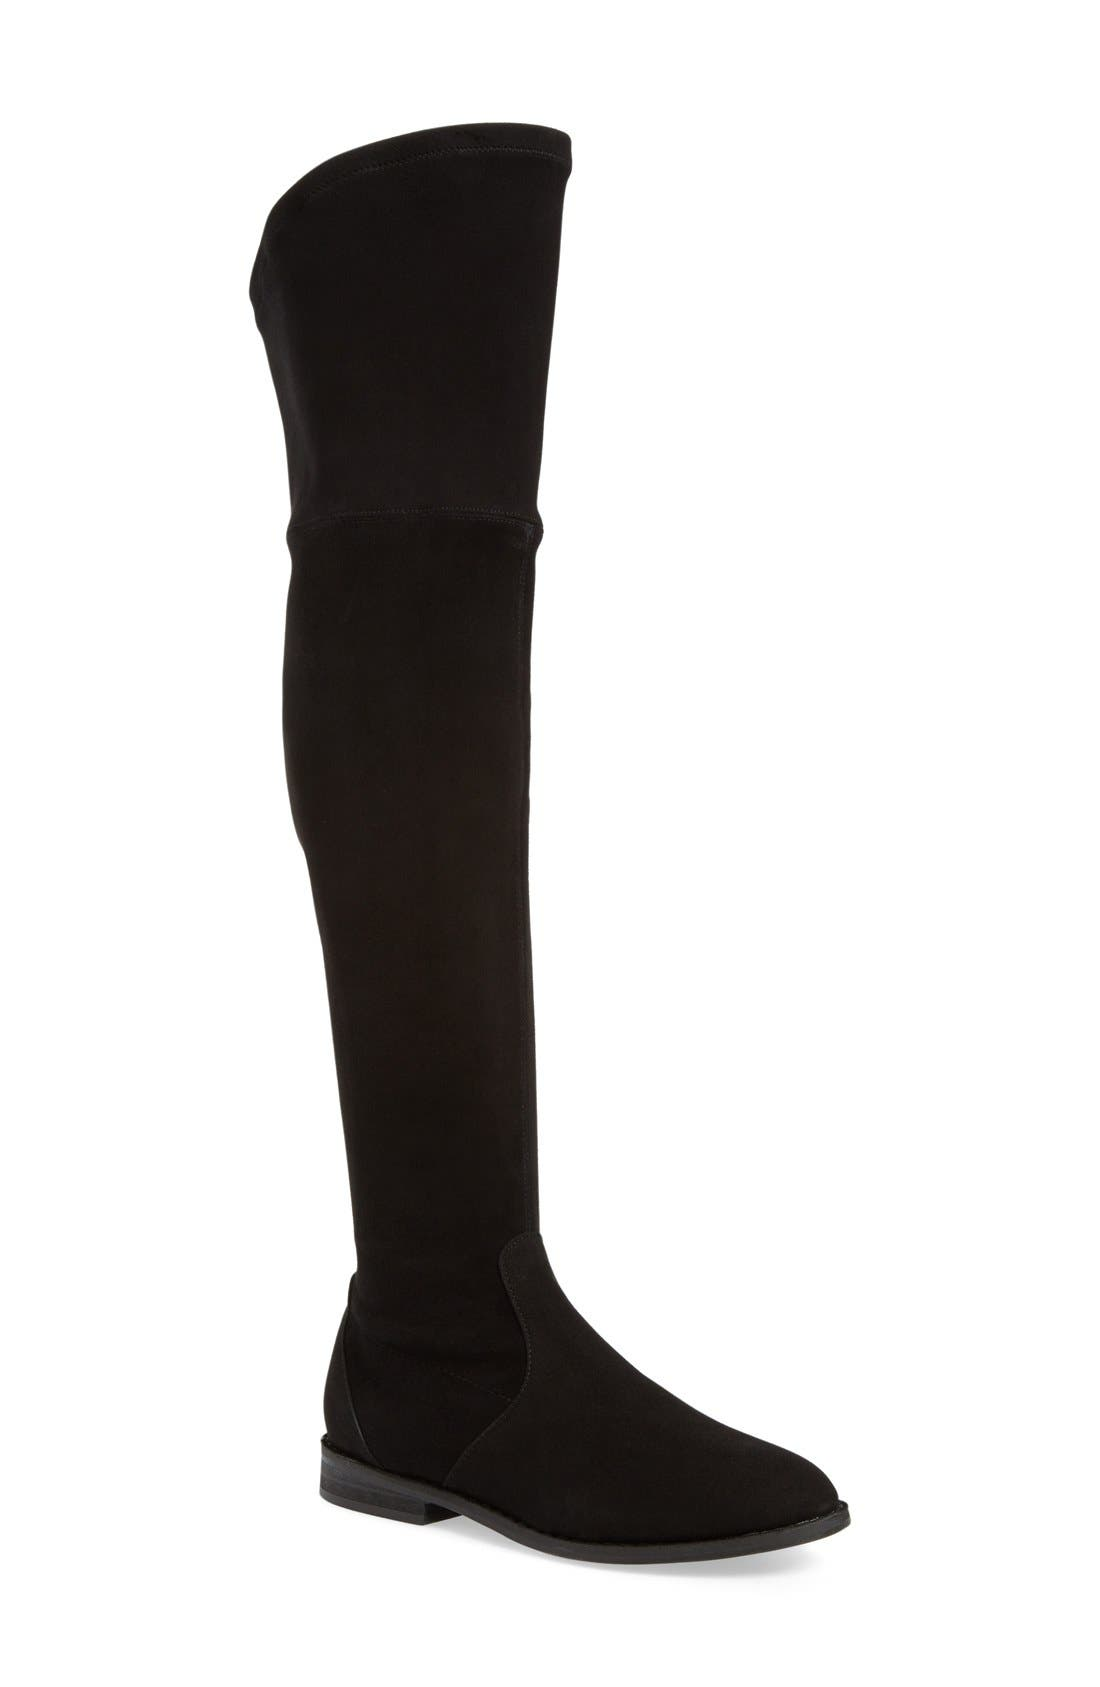 'Emma' Over the Knee Boot,                             Main thumbnail 1, color,                             Black Suede